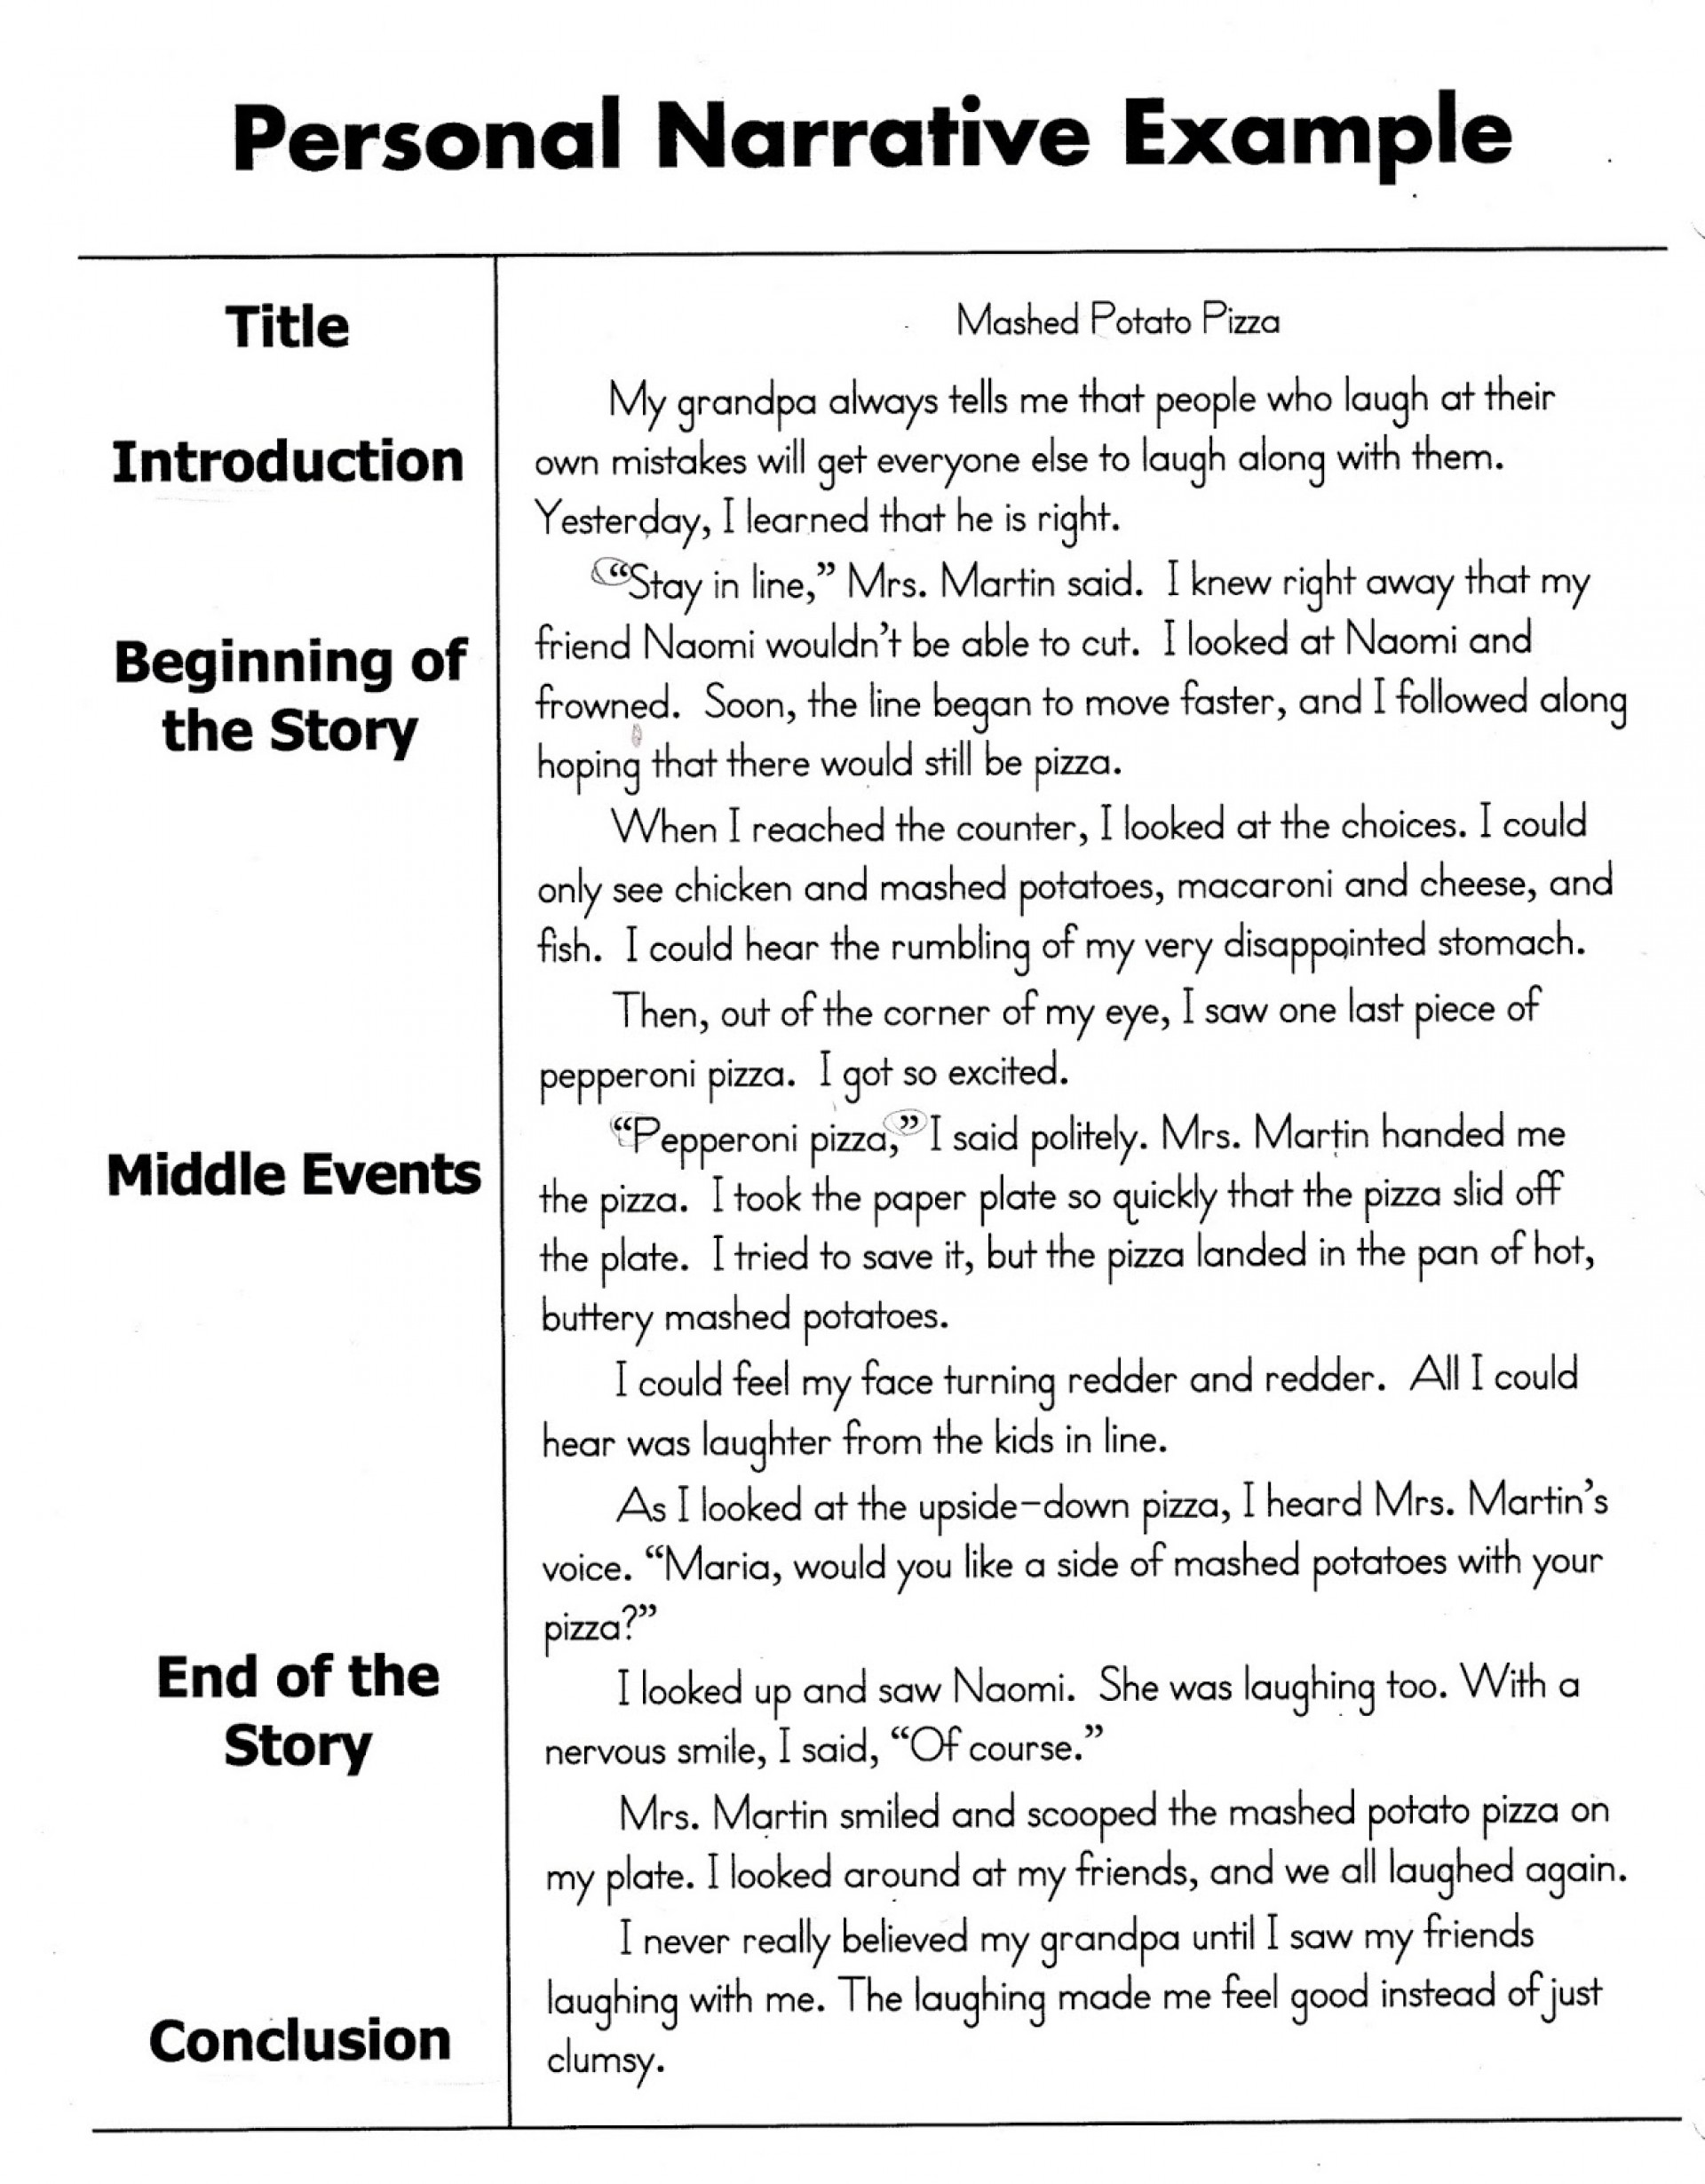 018 Personal20narrative Essay Example Short Fantastic Narrative Pdf About Life Topics 1920